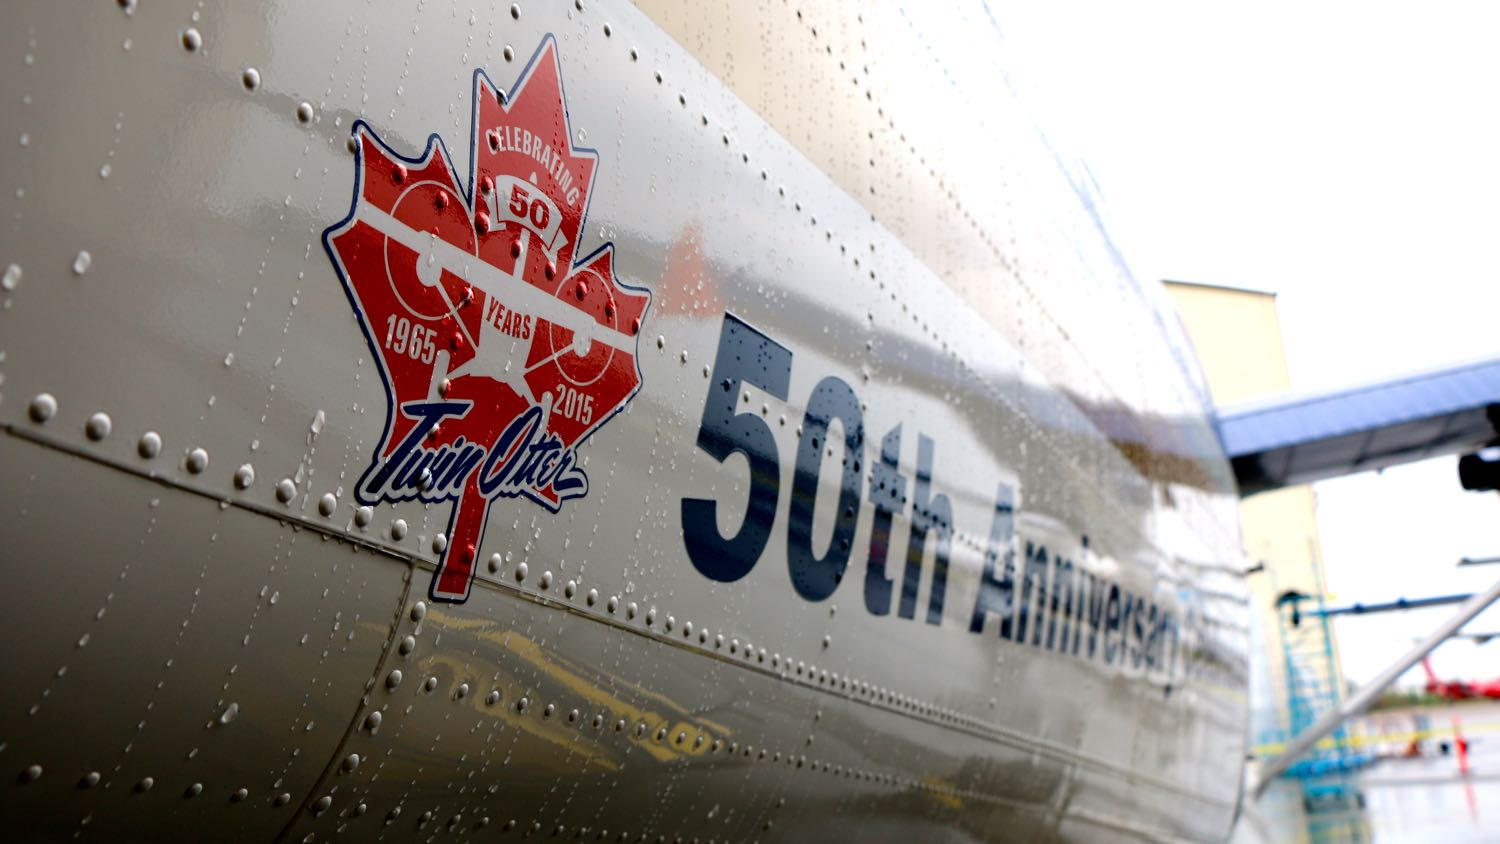 Twin Otter 50th anniversary in Yellowknife